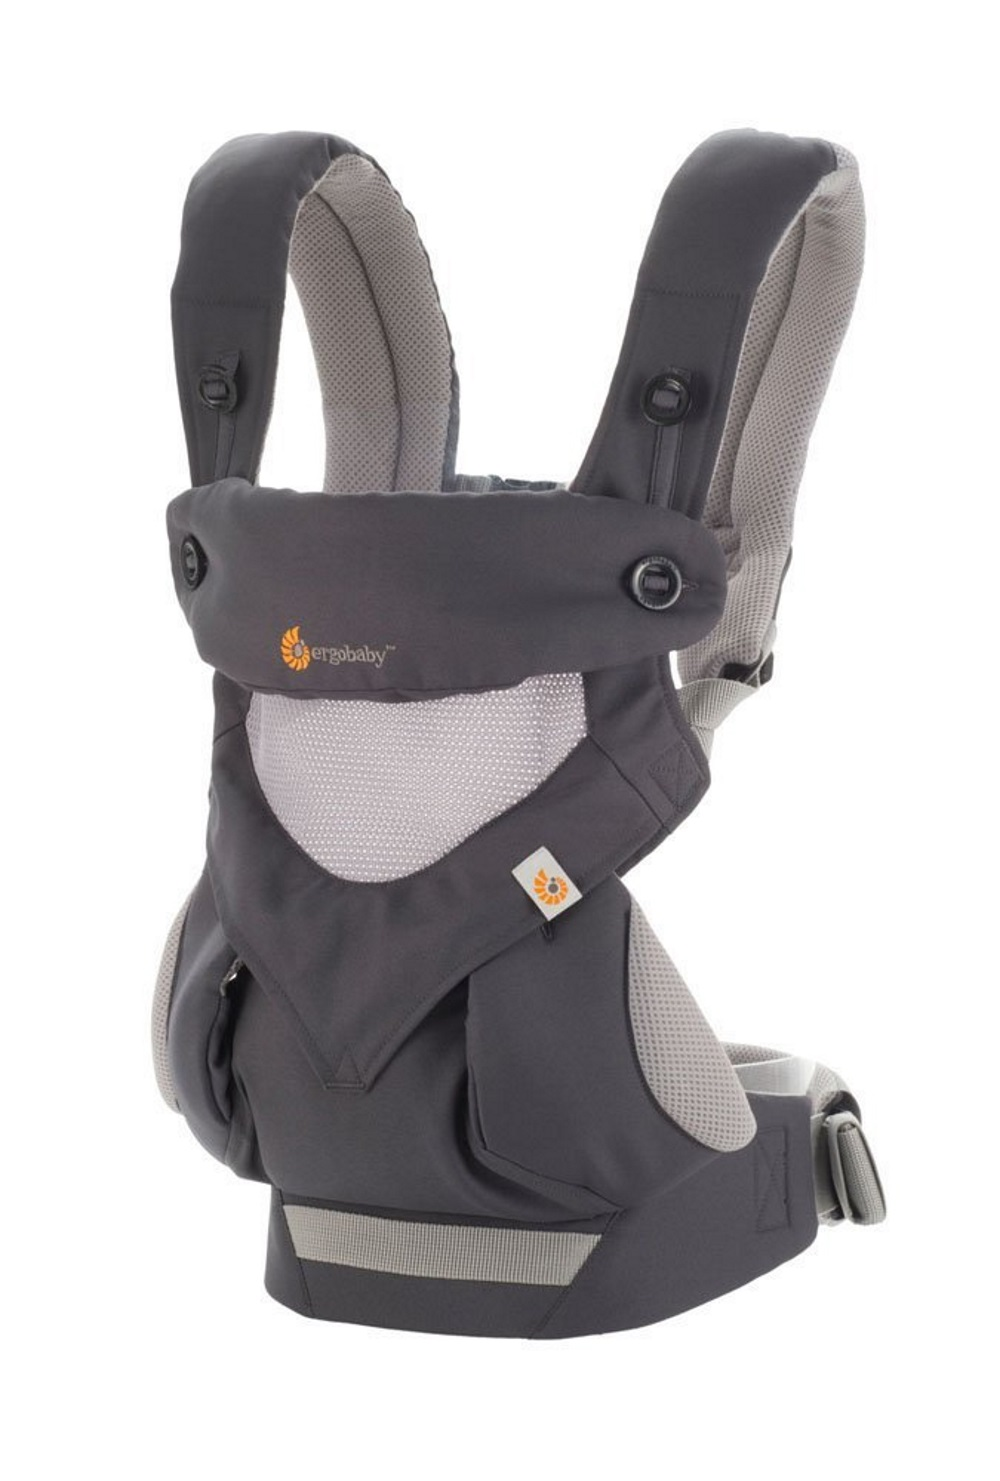 Ergobaby 360 Baby Carrier All Carry Positions Cool Air Mesh Carbon Grey by Ergobaby